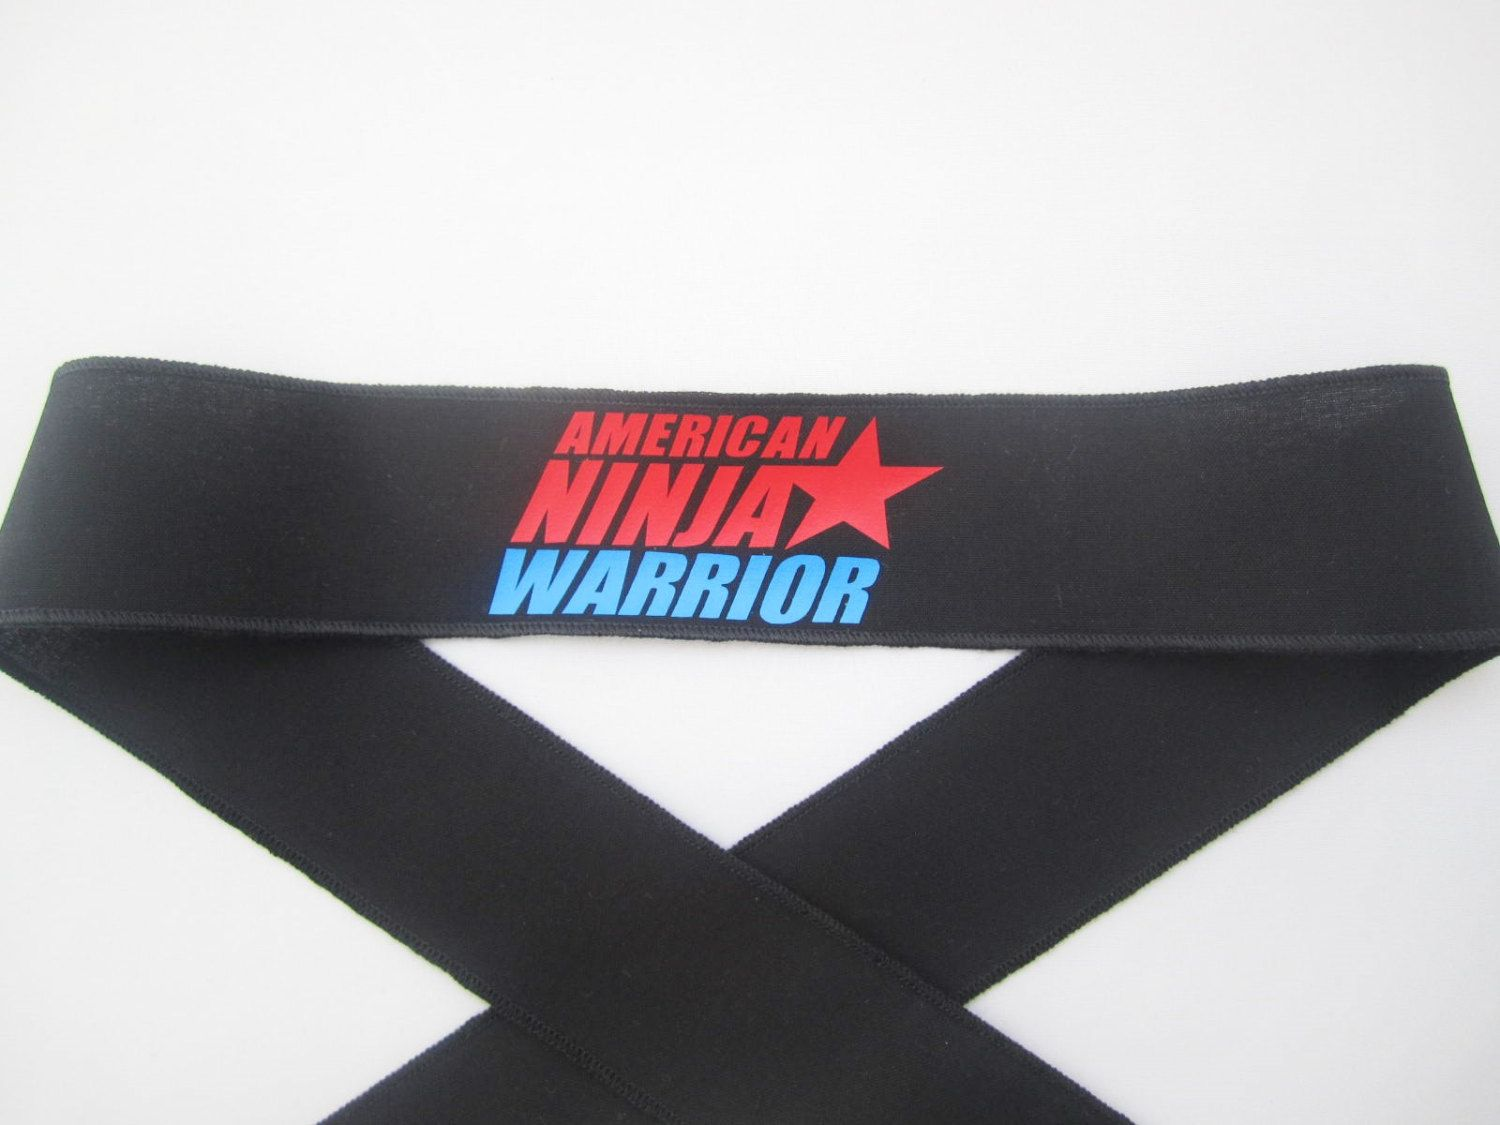 martial arts headbands perfect party favors for any american ninja